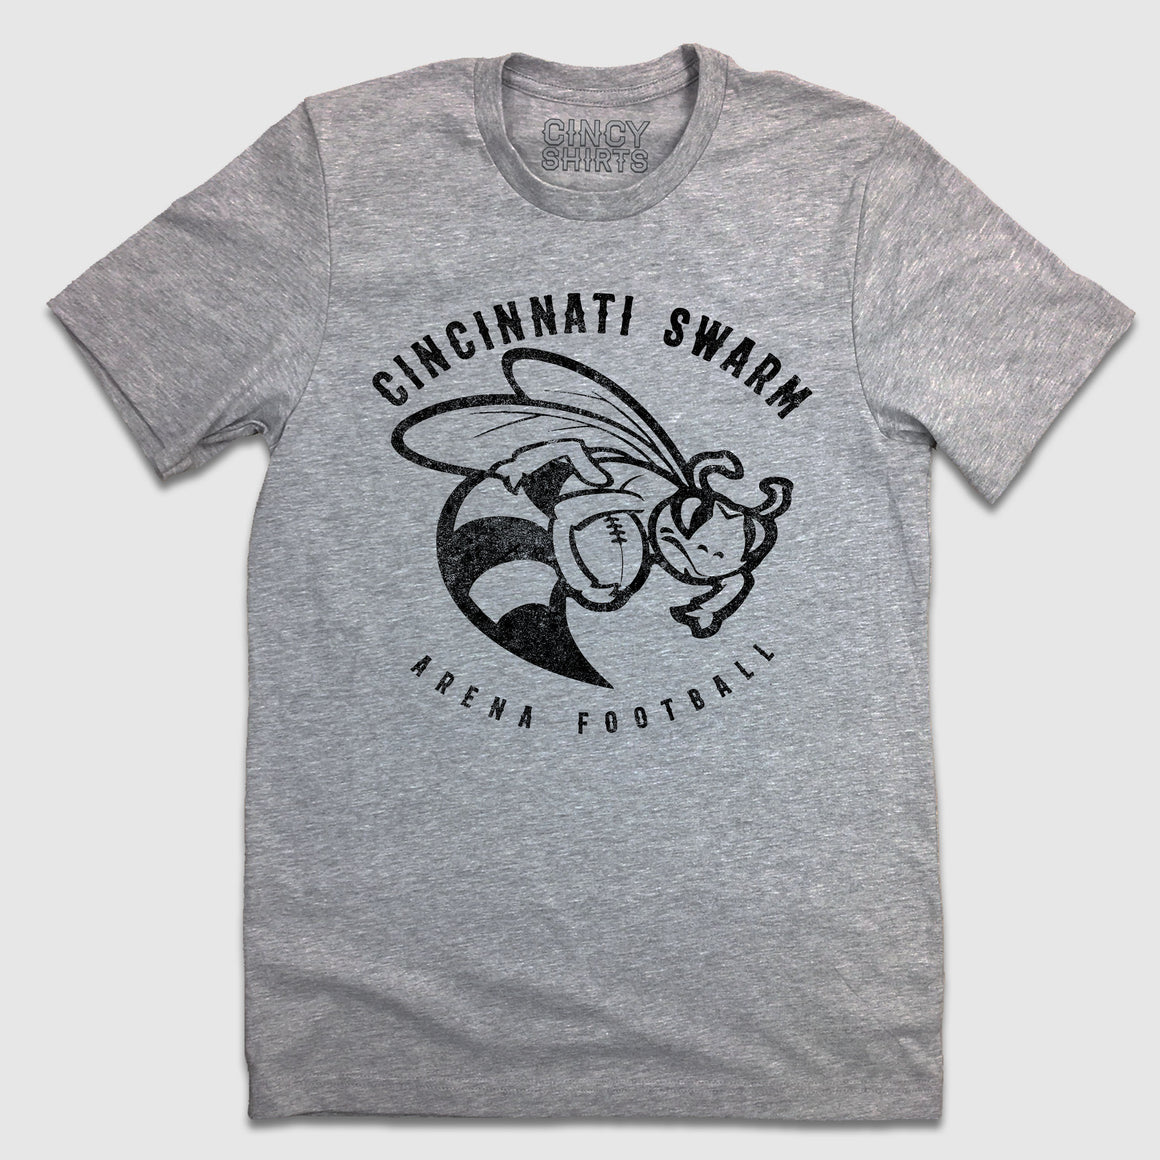 Cincinnati Swarm Arena Football T-shirt af2